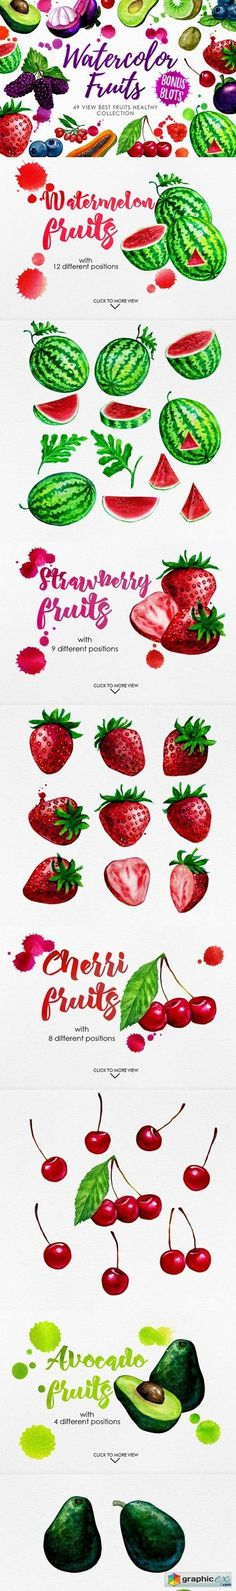 Watercolor Fruits Vol. 3  stock images